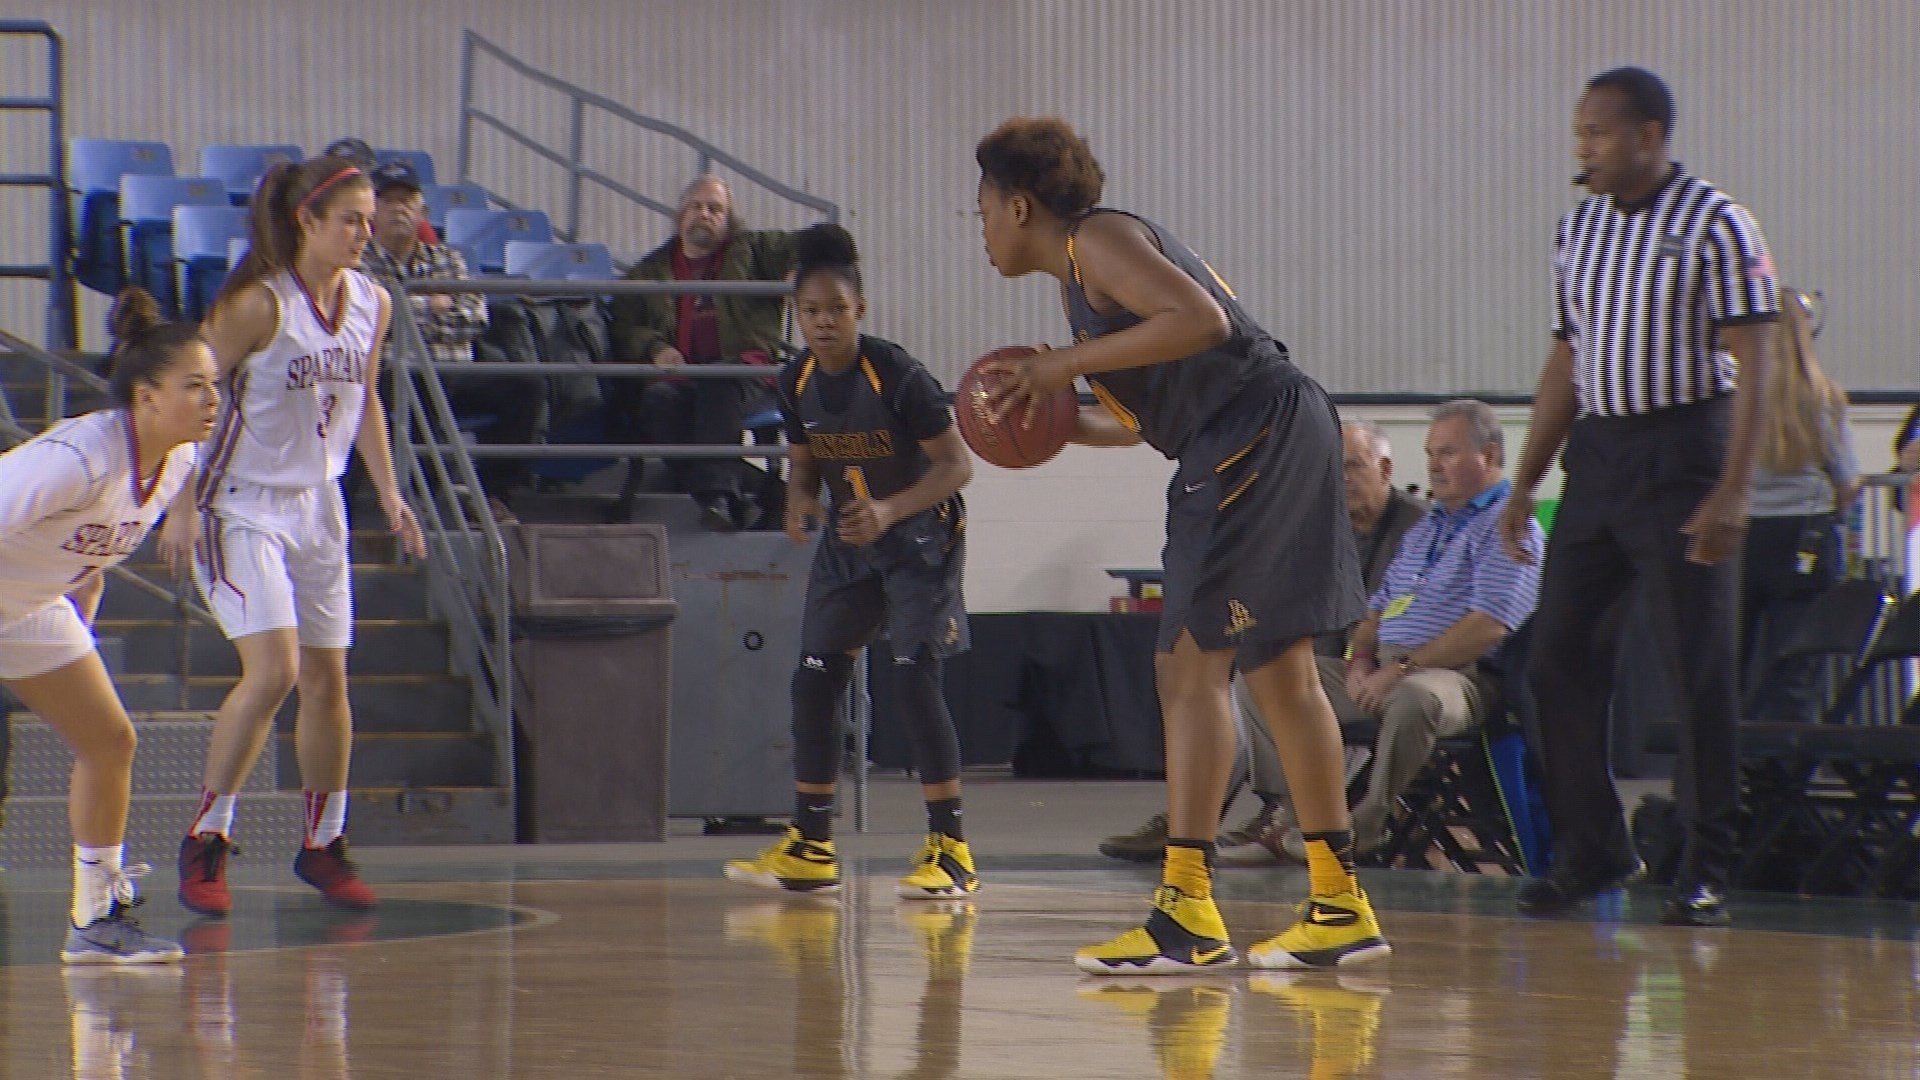 lincoln university girls Lincolnu college  about lincoln history  women's sports recreation & wellness  lincoln university of missouri proud past,.